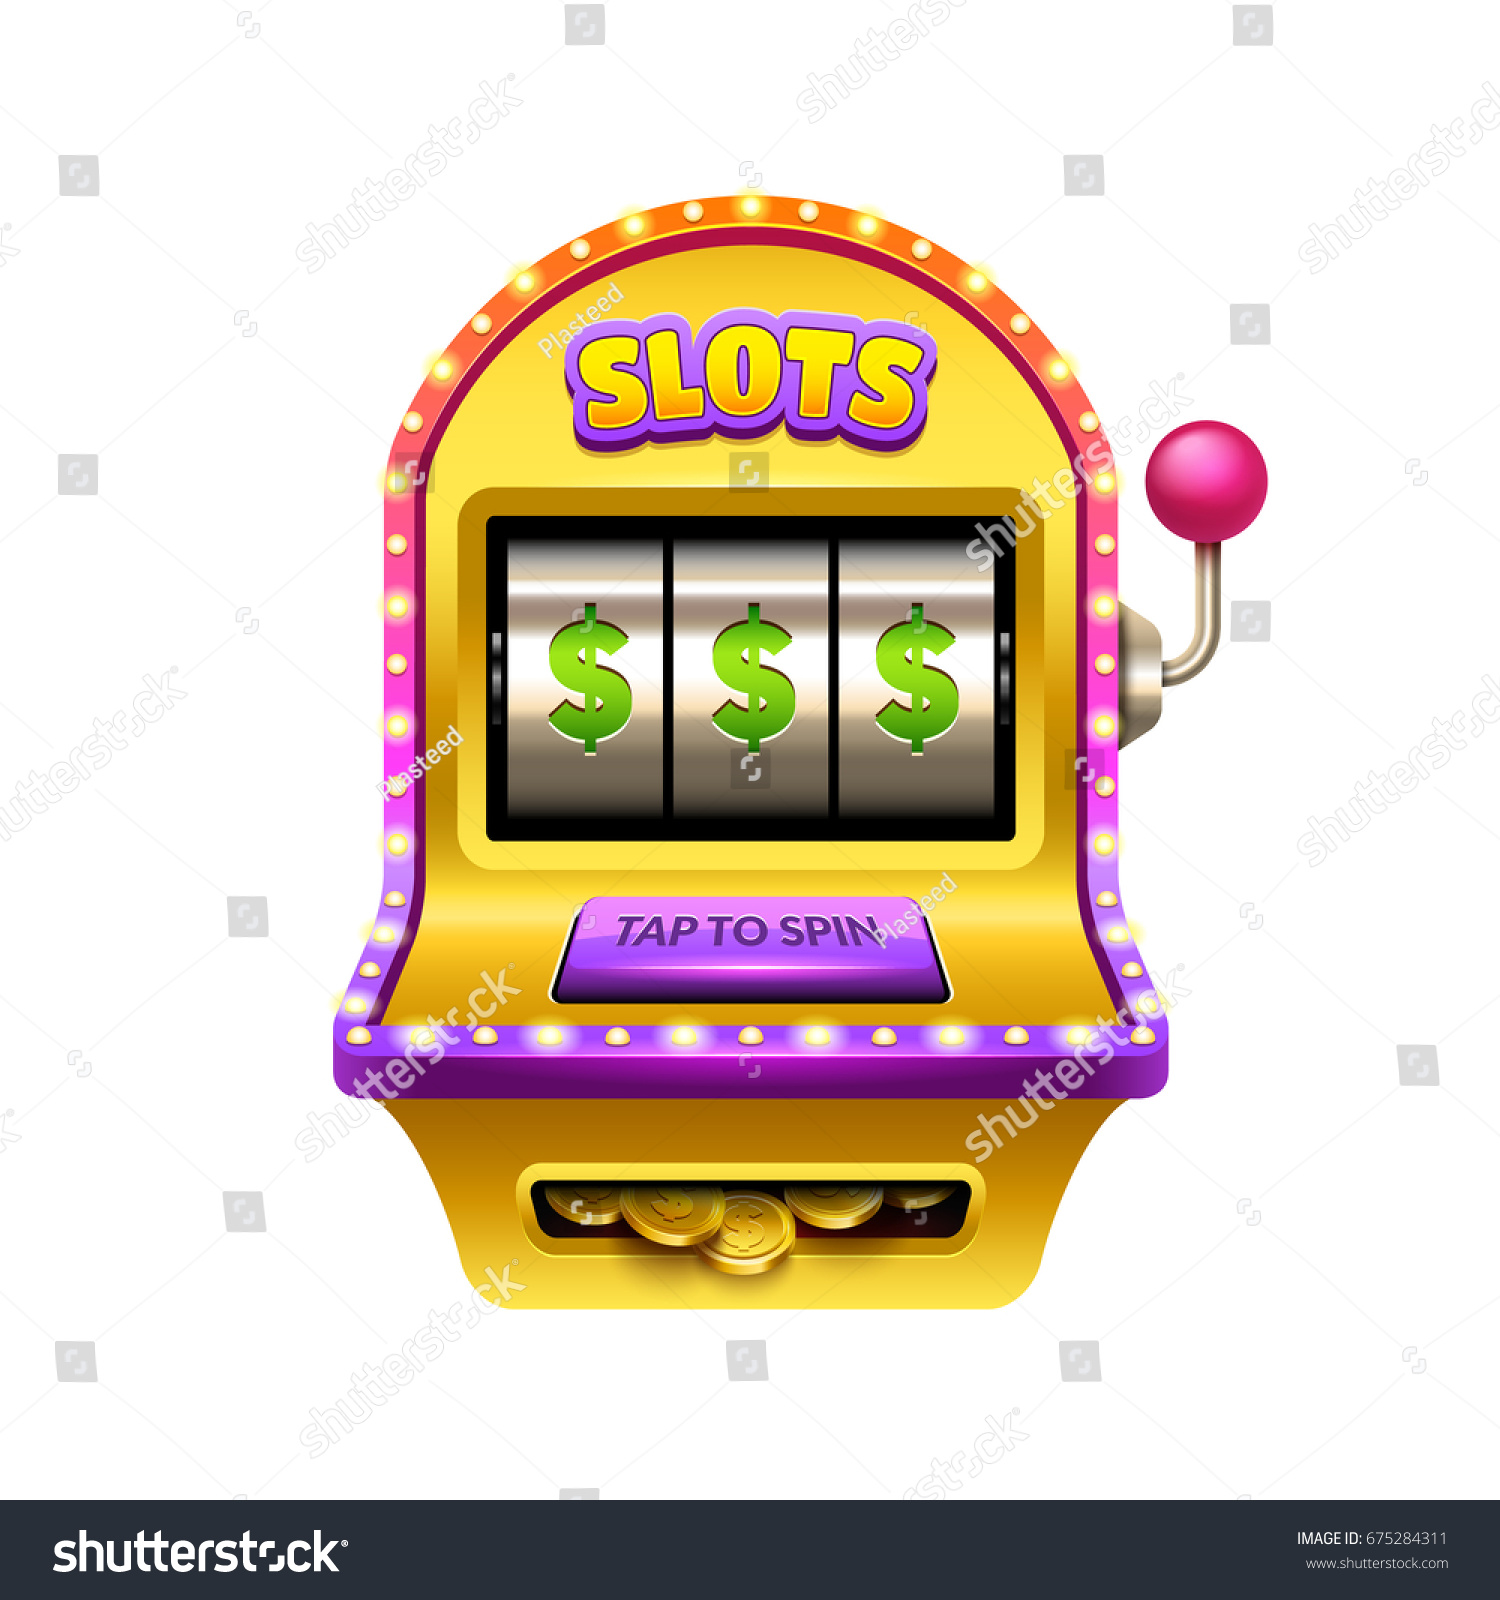 Slot Machine Illustration Casino Game Ui Stock Vector Royalty Free 675284311